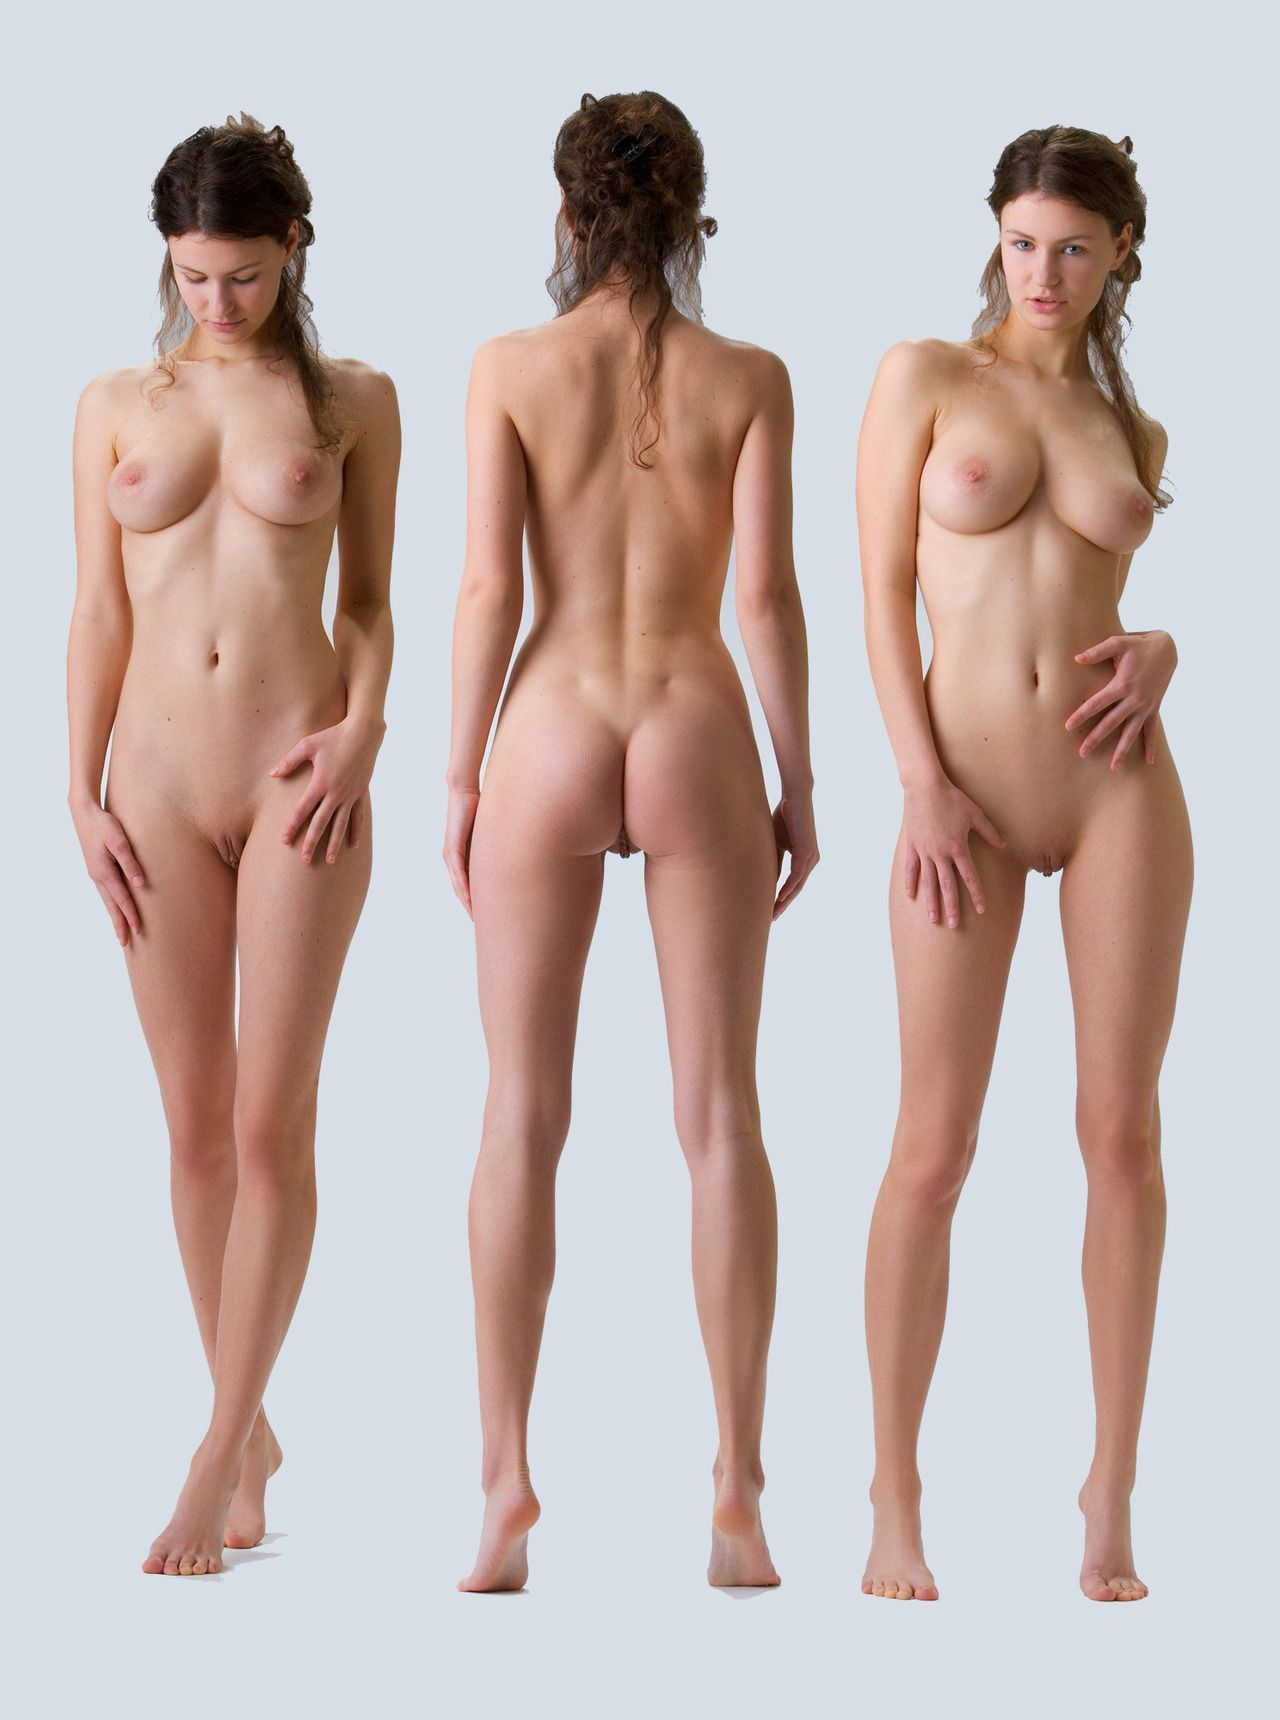 3d nude female art sex thumbs